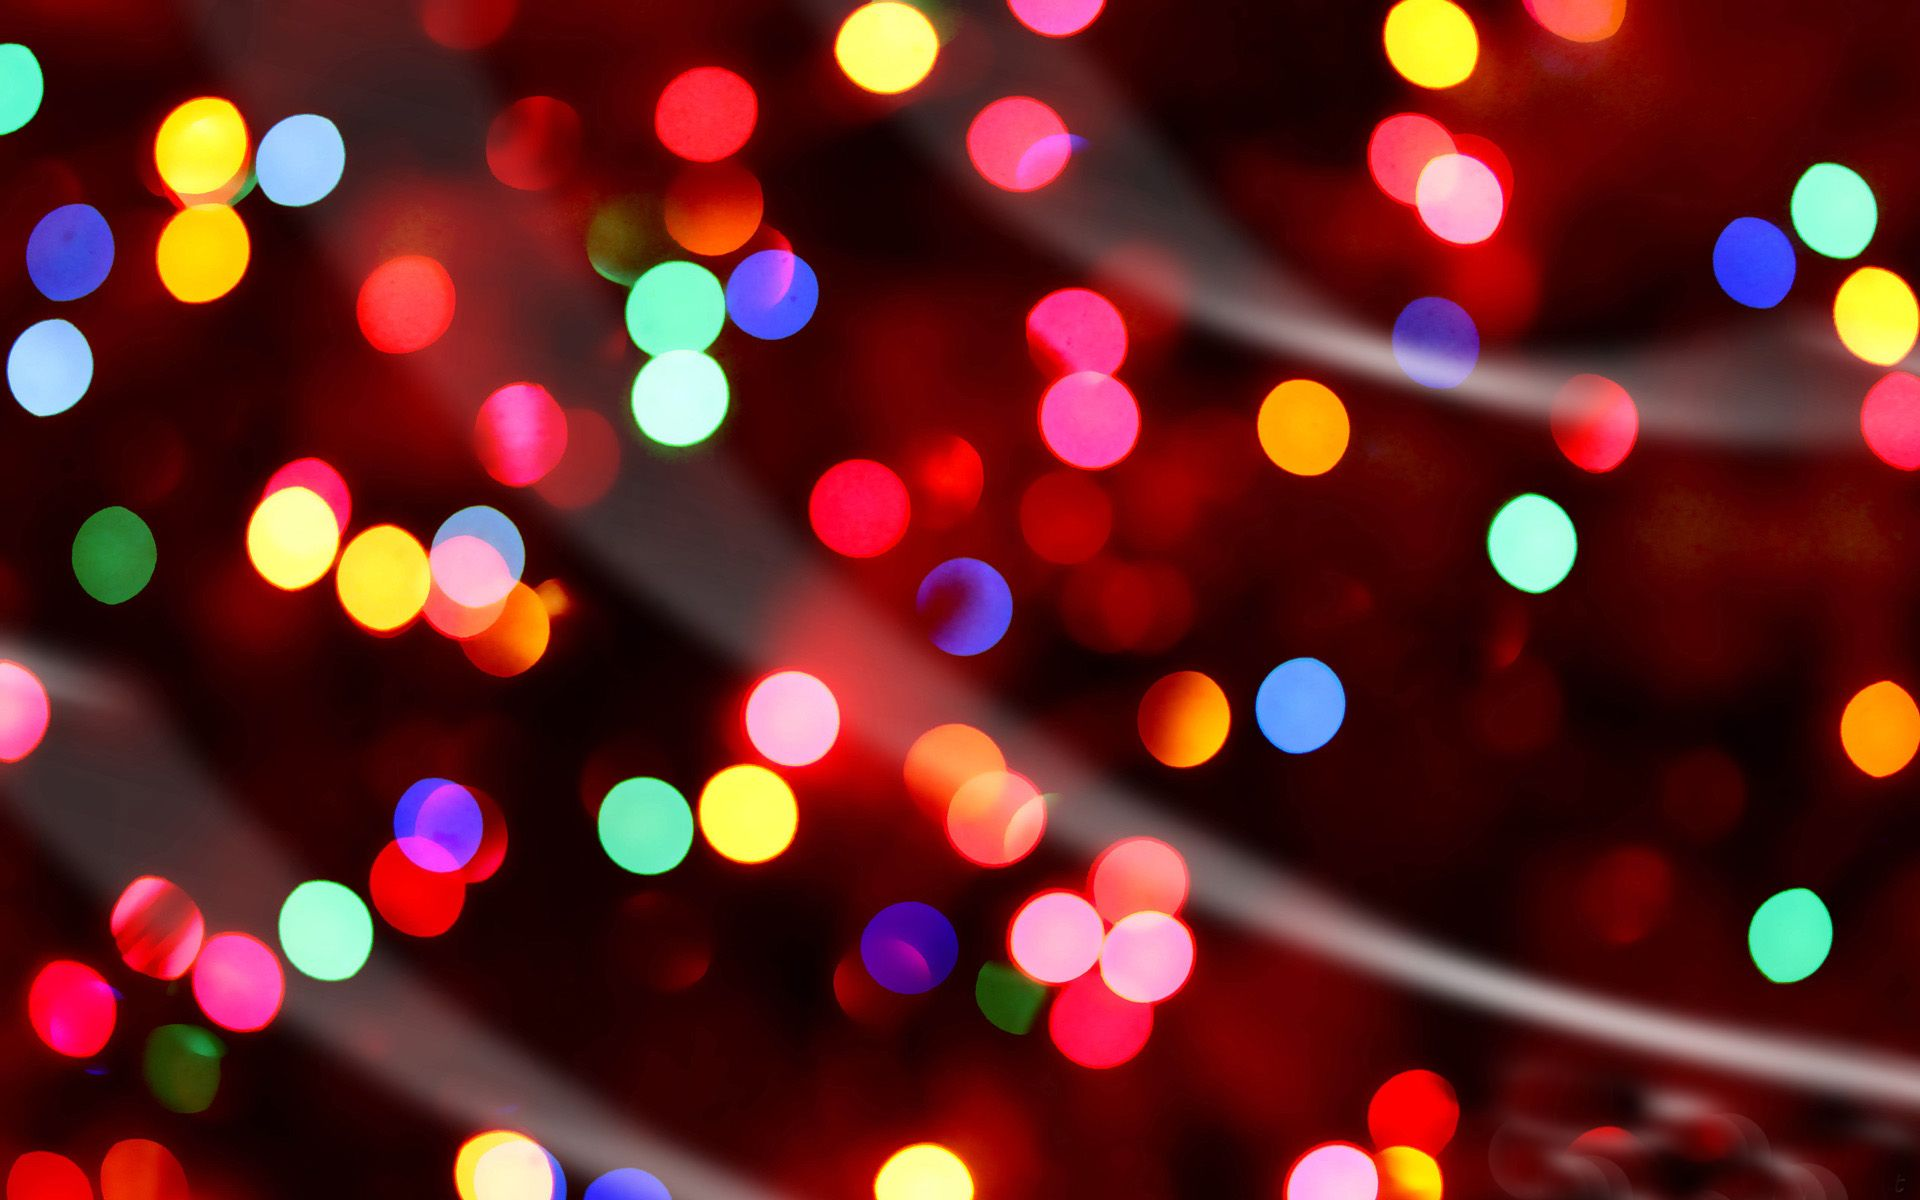 Christmas Lights Tumblr Cute Wallpapers Top Free Christmas Lights Tumblr Cute Backgrounds Wallpaperaccess